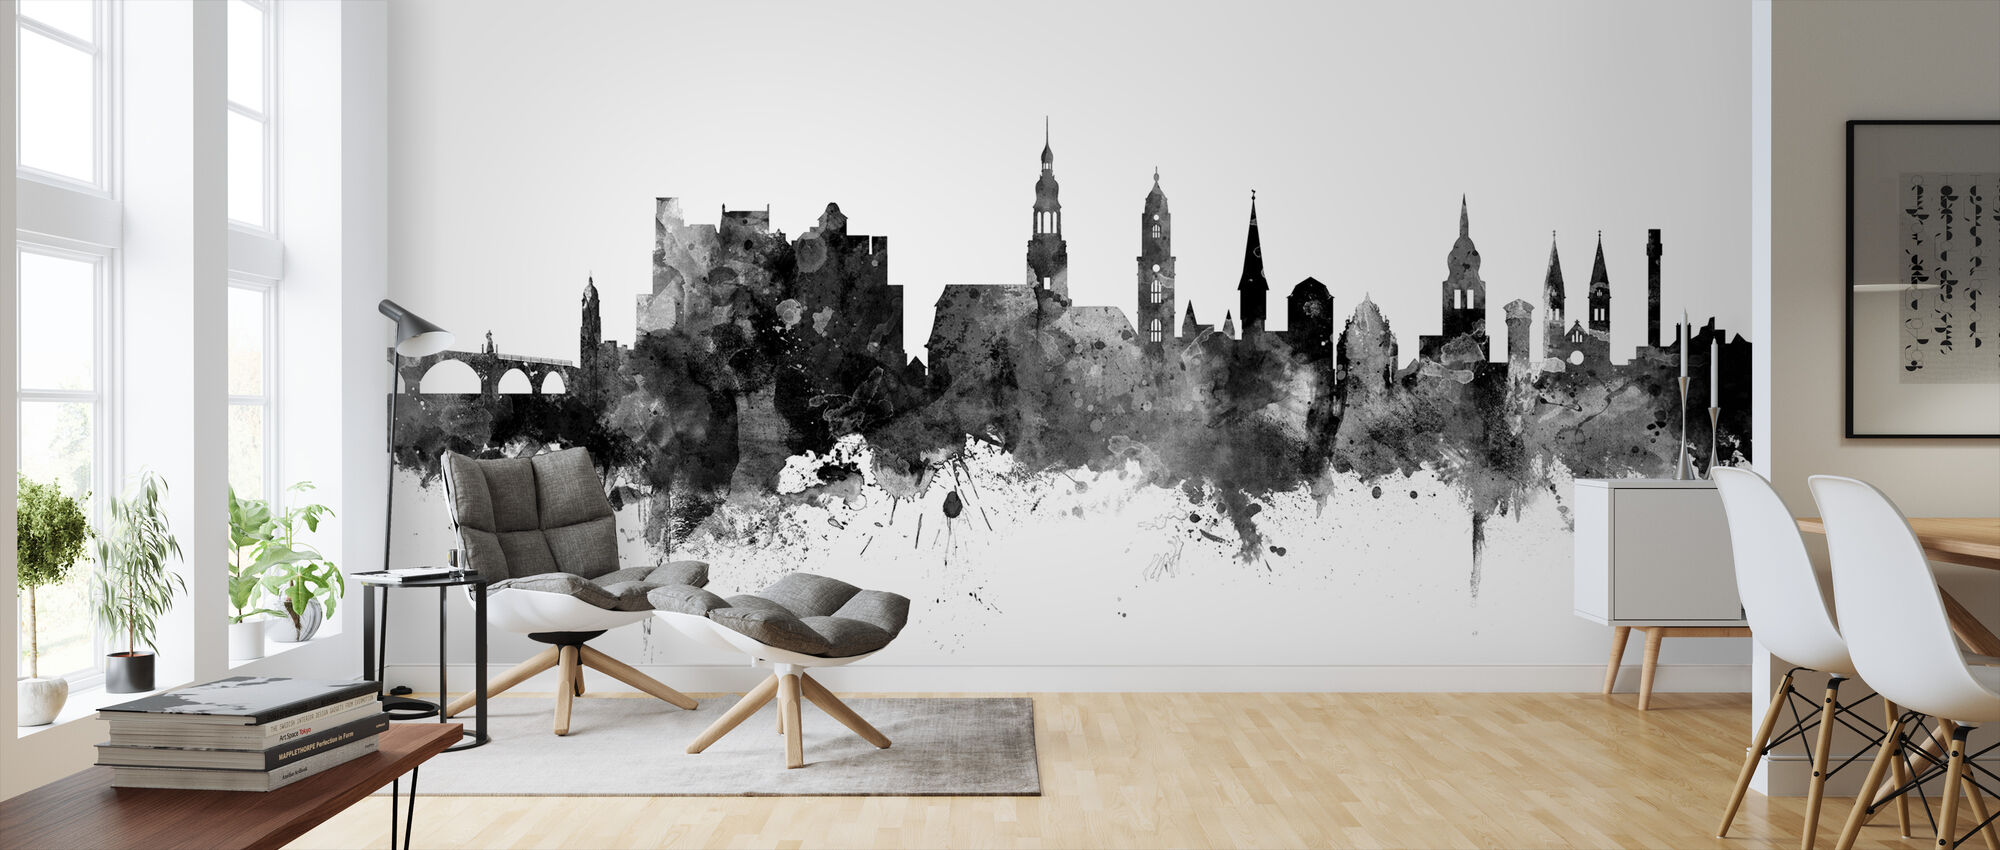 Heidelberg Skyline Black - Wallpaper - Living Room